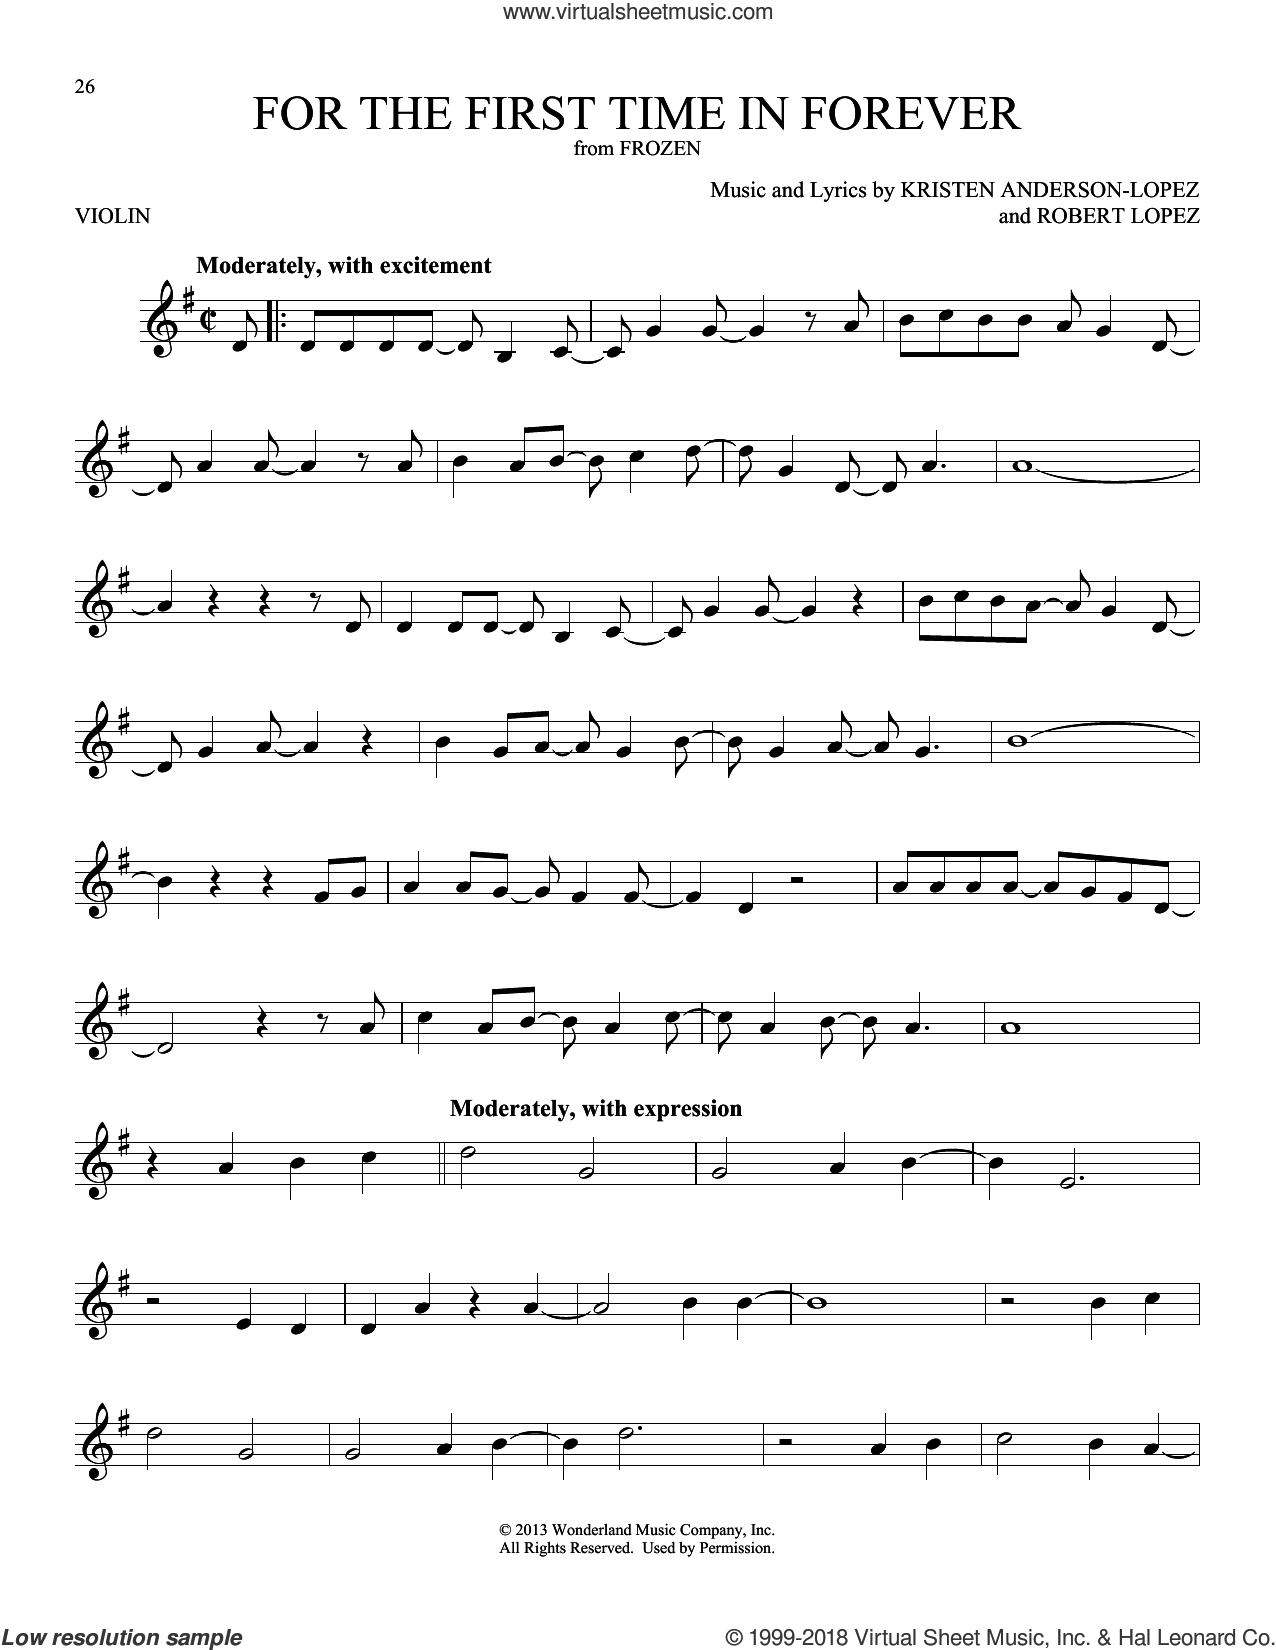 For The First Time In Forever (from Disney's Frozen) sheet music for violin solo by Kristen Bell, Idina Menzel, Kristen Anderson-Lopez and Robert Lopez, intermediate skill level